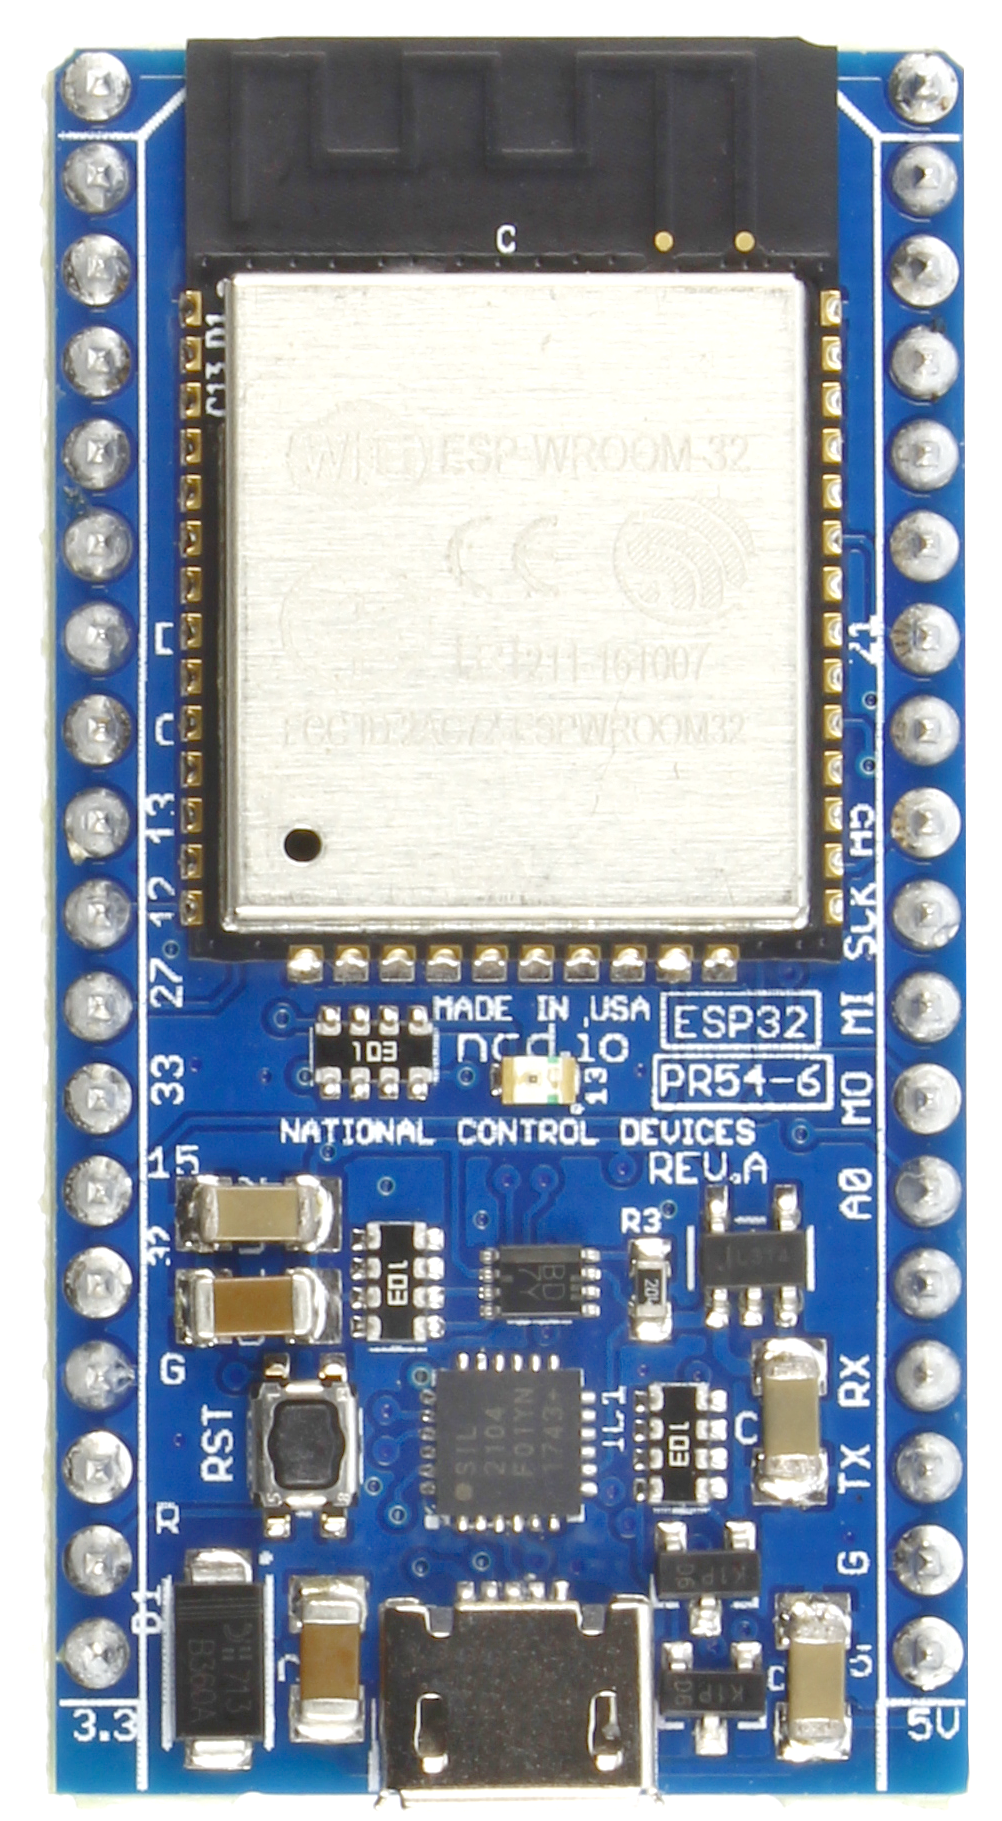 ESP32 IoT WiFi BLE Module with Integrated USB - store ncd io